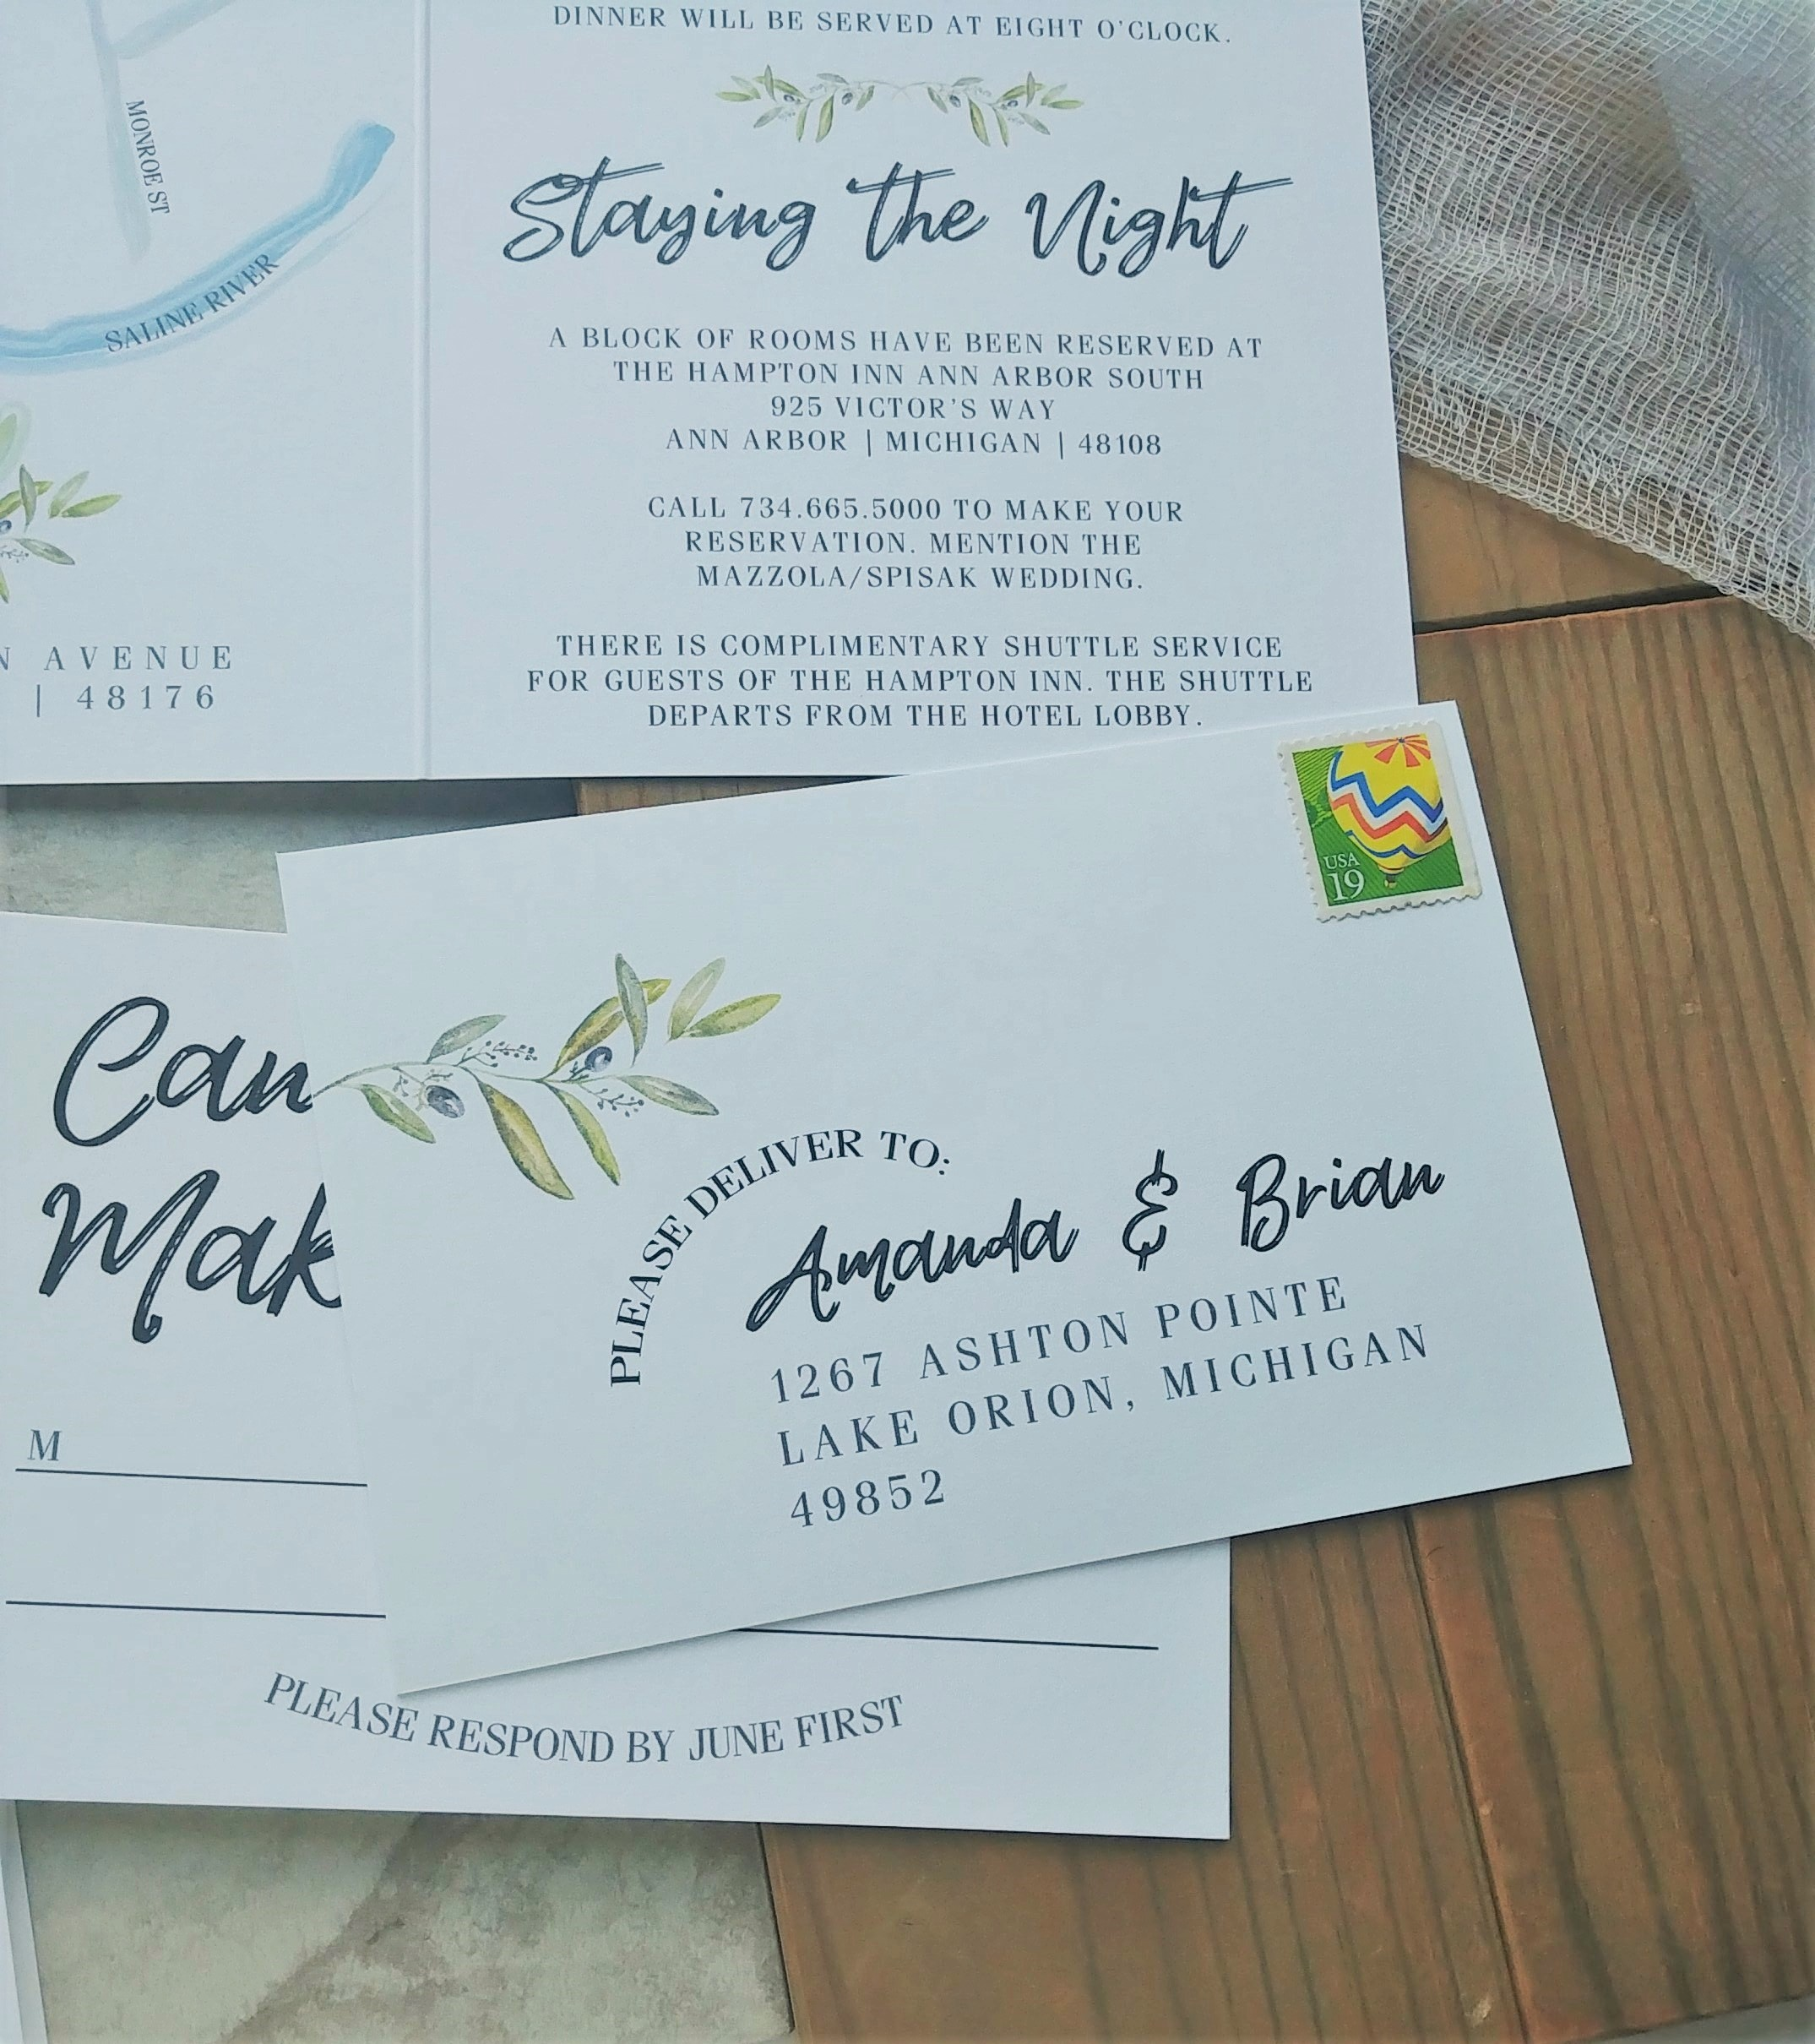 Cordial Punch Press Fresh Minimal Greenery Booklet Wedding Invitation with Postcard RSVP